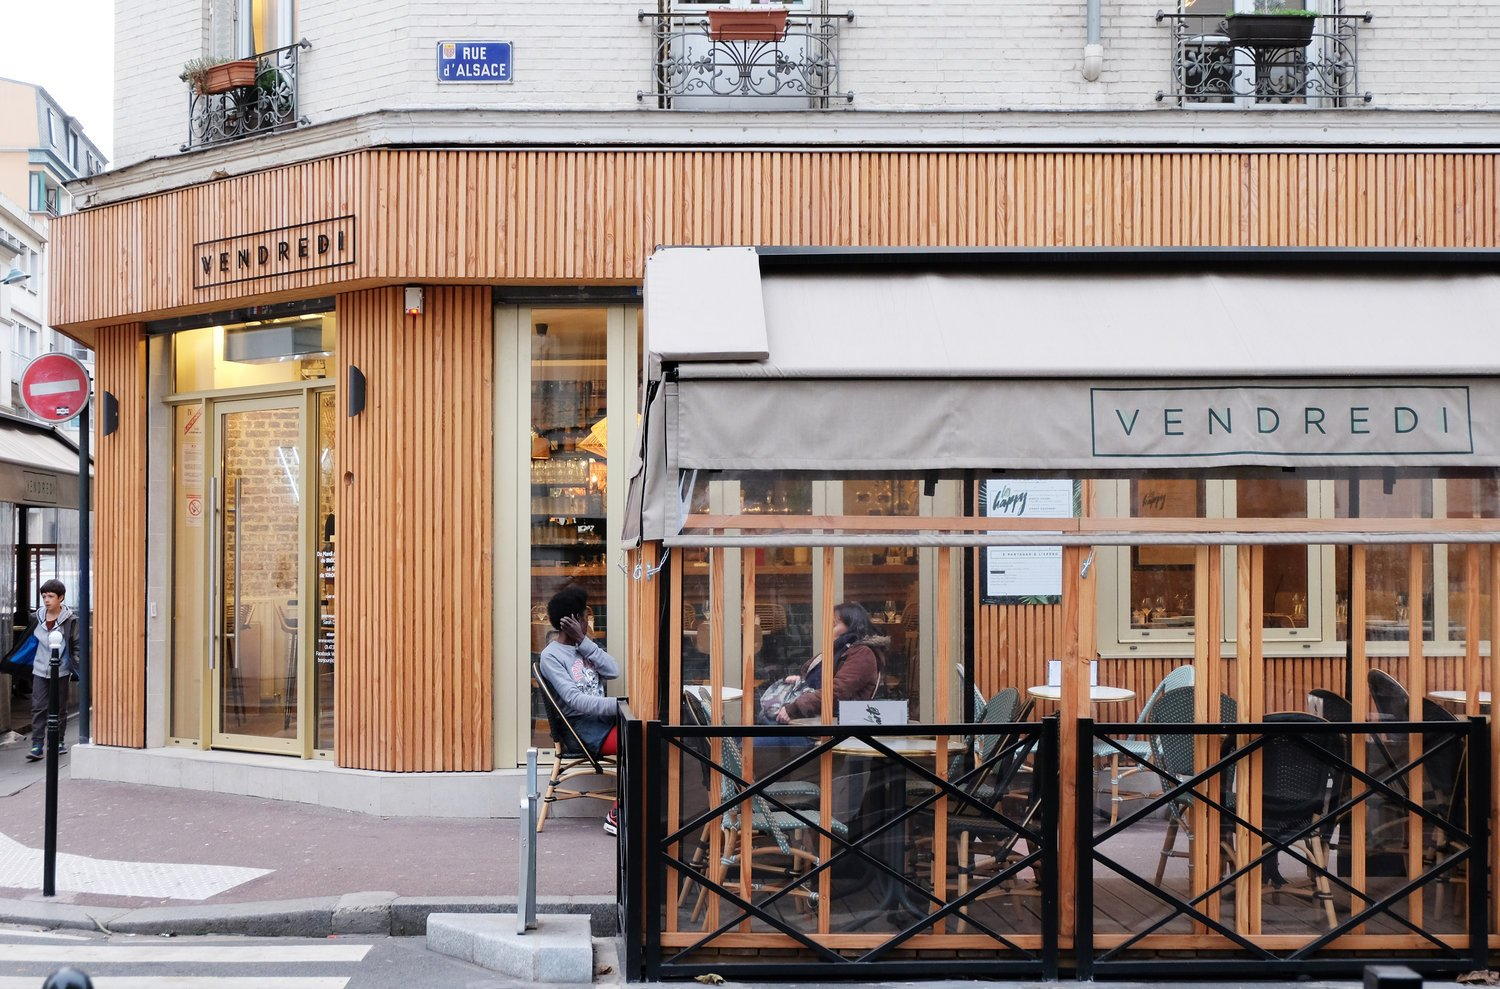 Things To Do in Wine Bar, Restaurants in Wine Bar